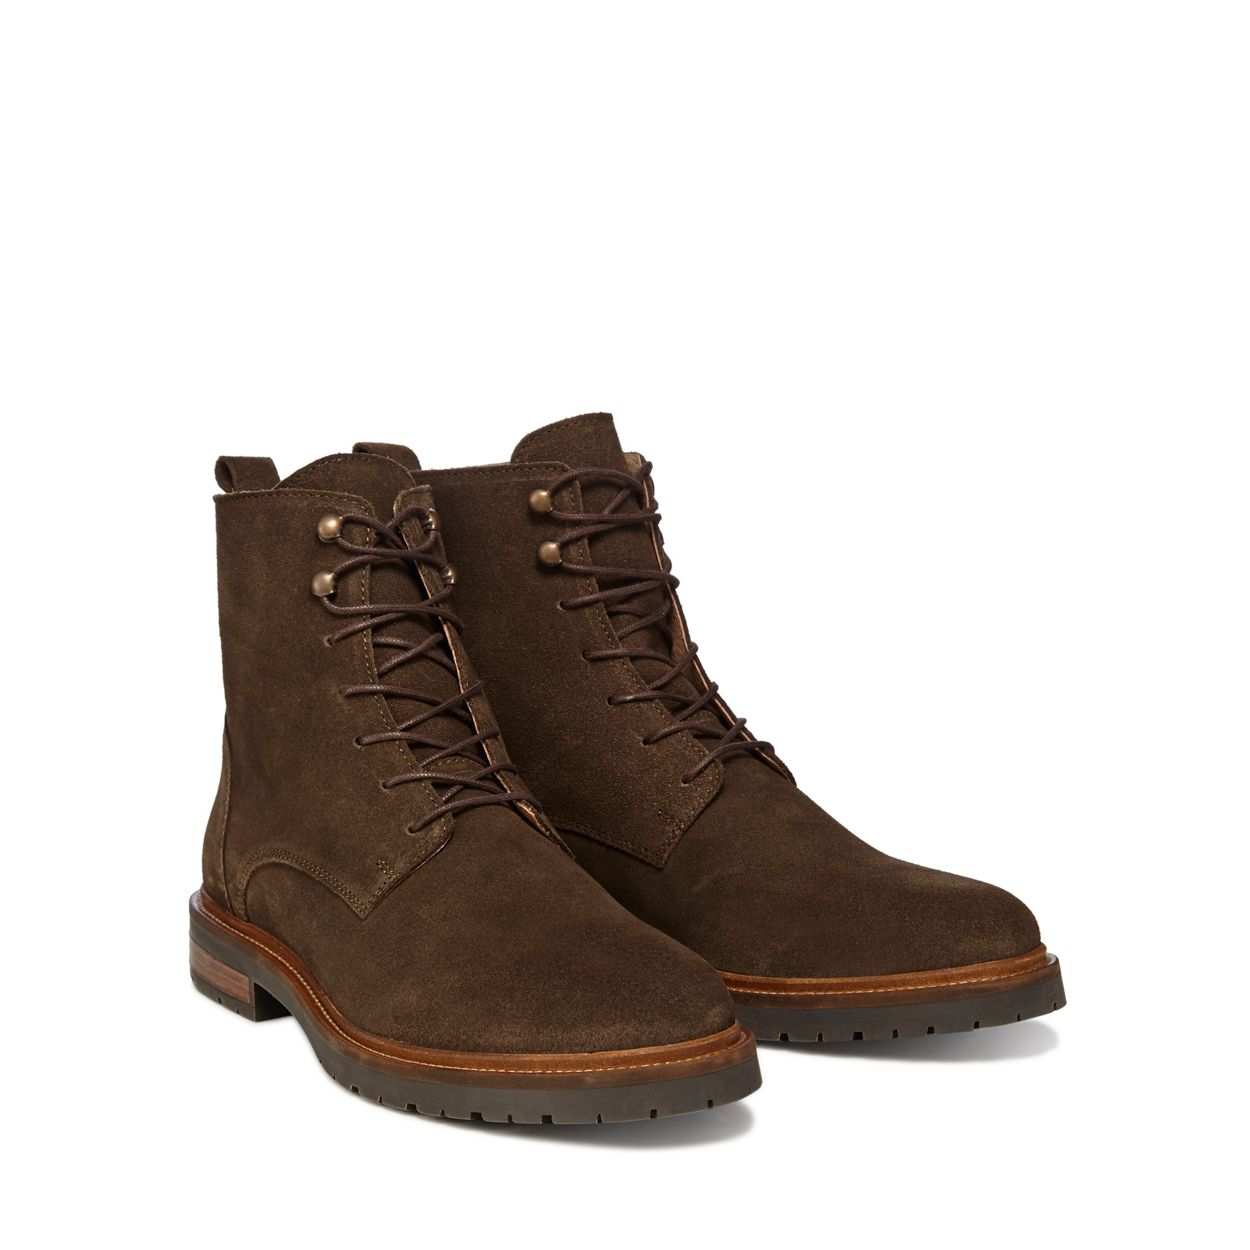 Hammond & Co. by Patrick Grant Khaki suede 'Hayling' lace up boots